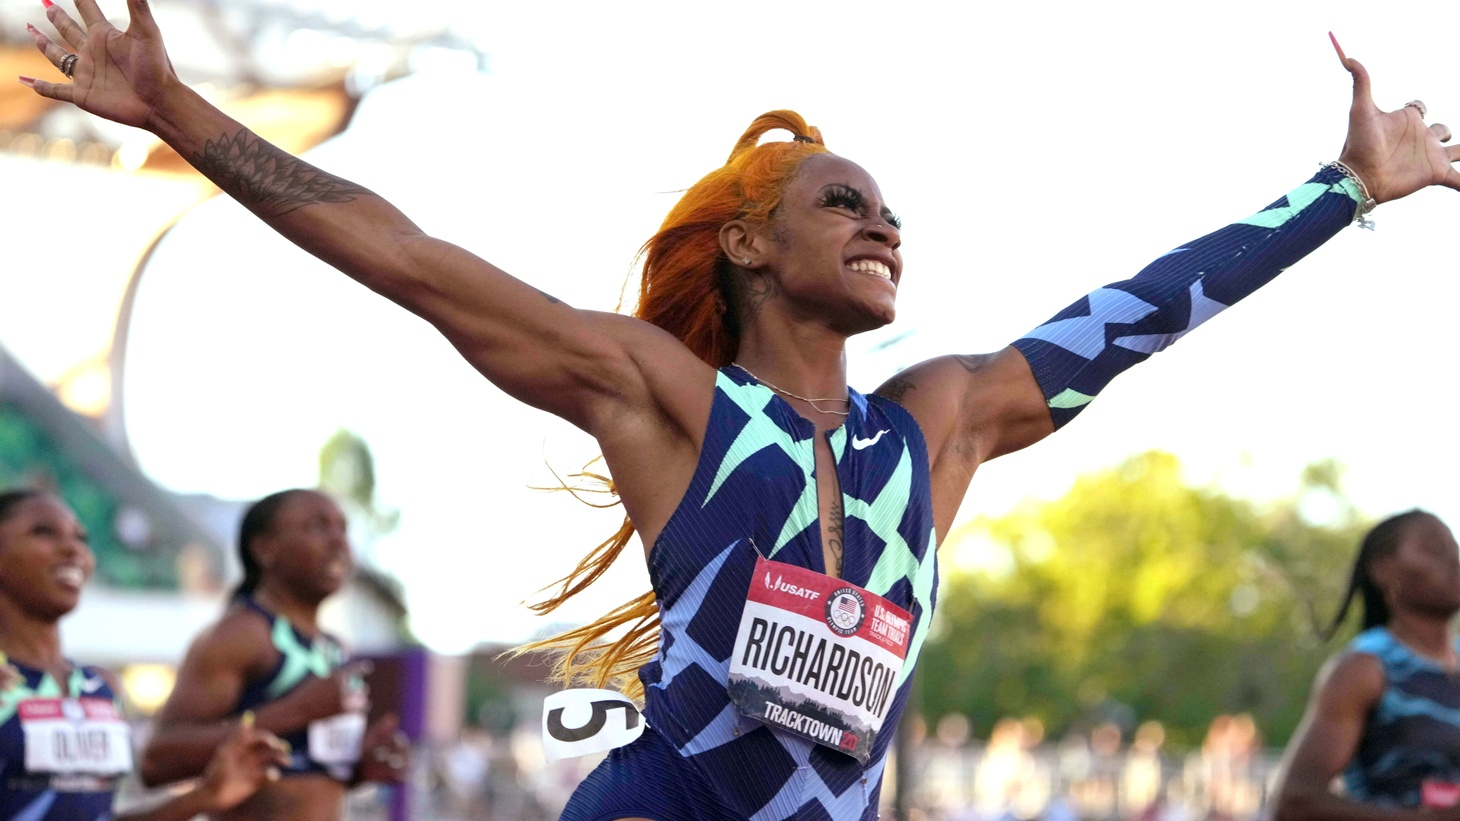 Sha'Carri Richardson celebrates after winning the women's 100m in 10.86 during the U.S. Olympic Team Trials at Hayward Field. Jun 19, 2021, Eugene, OR, USA.